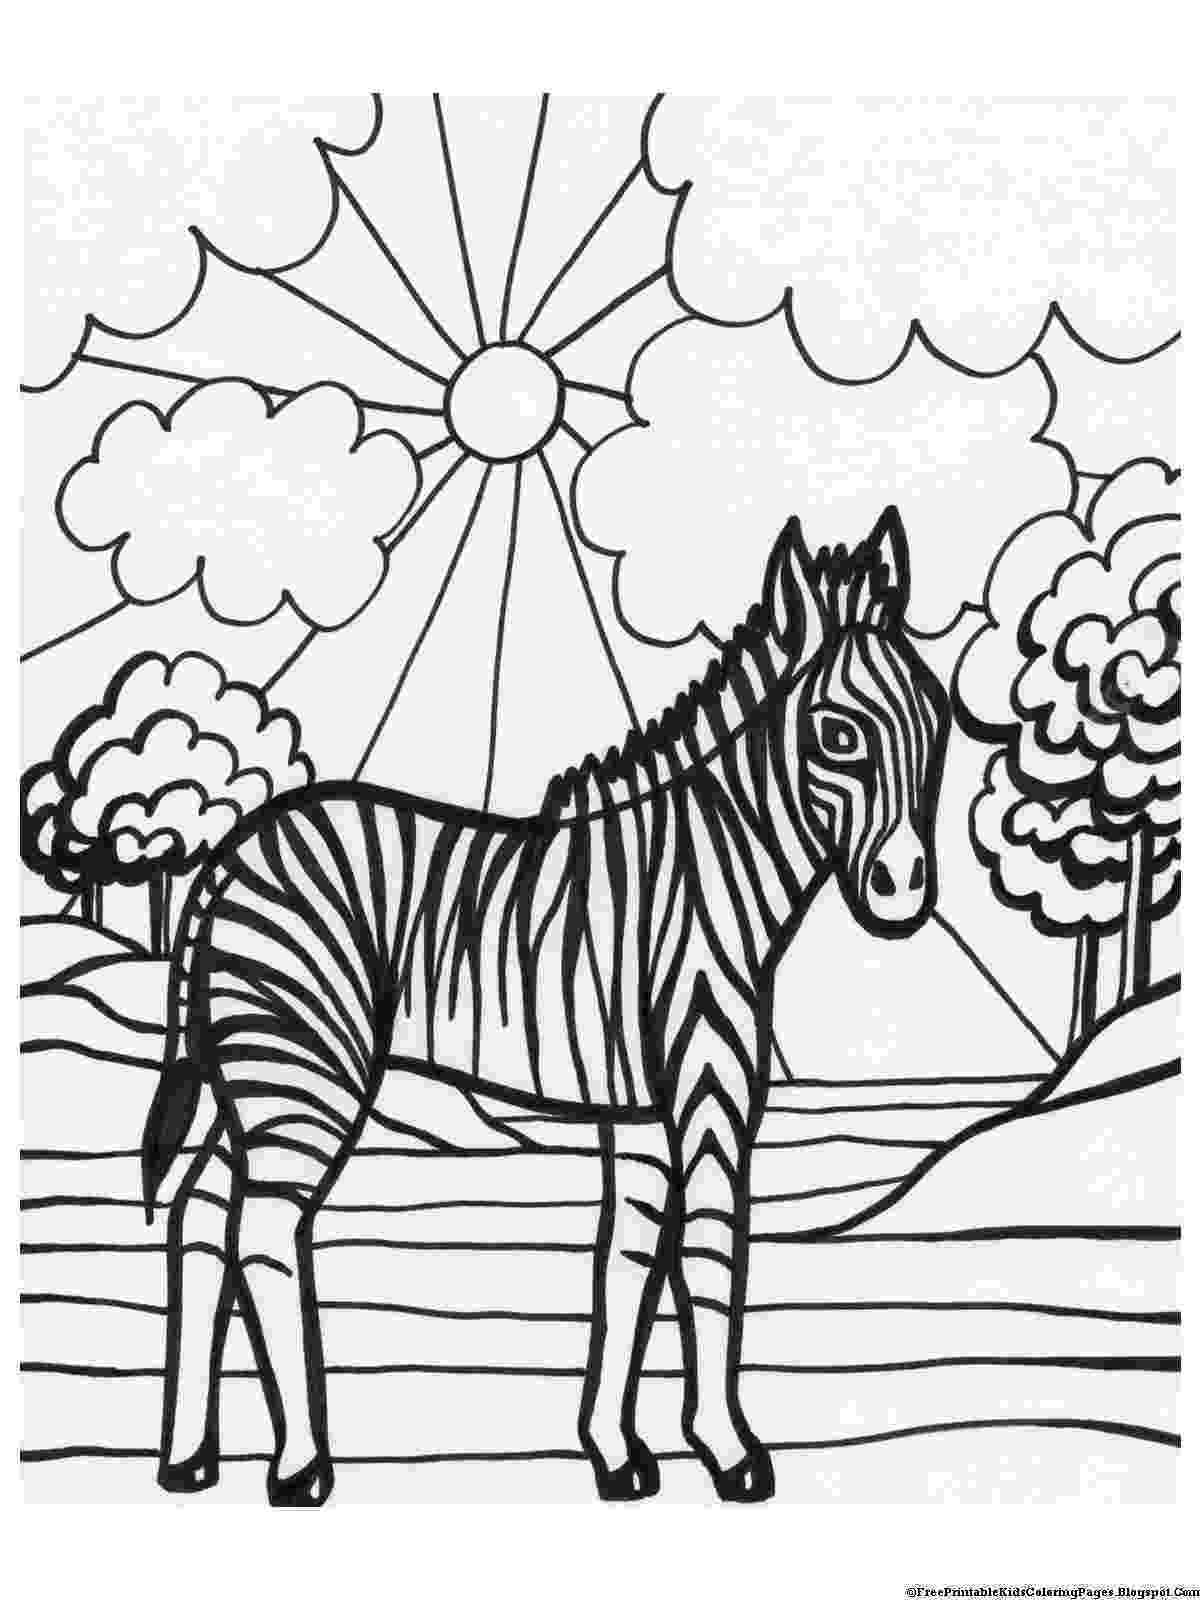 print coloring sheets lisa frank coloring pages to download and print for free sheets coloring print